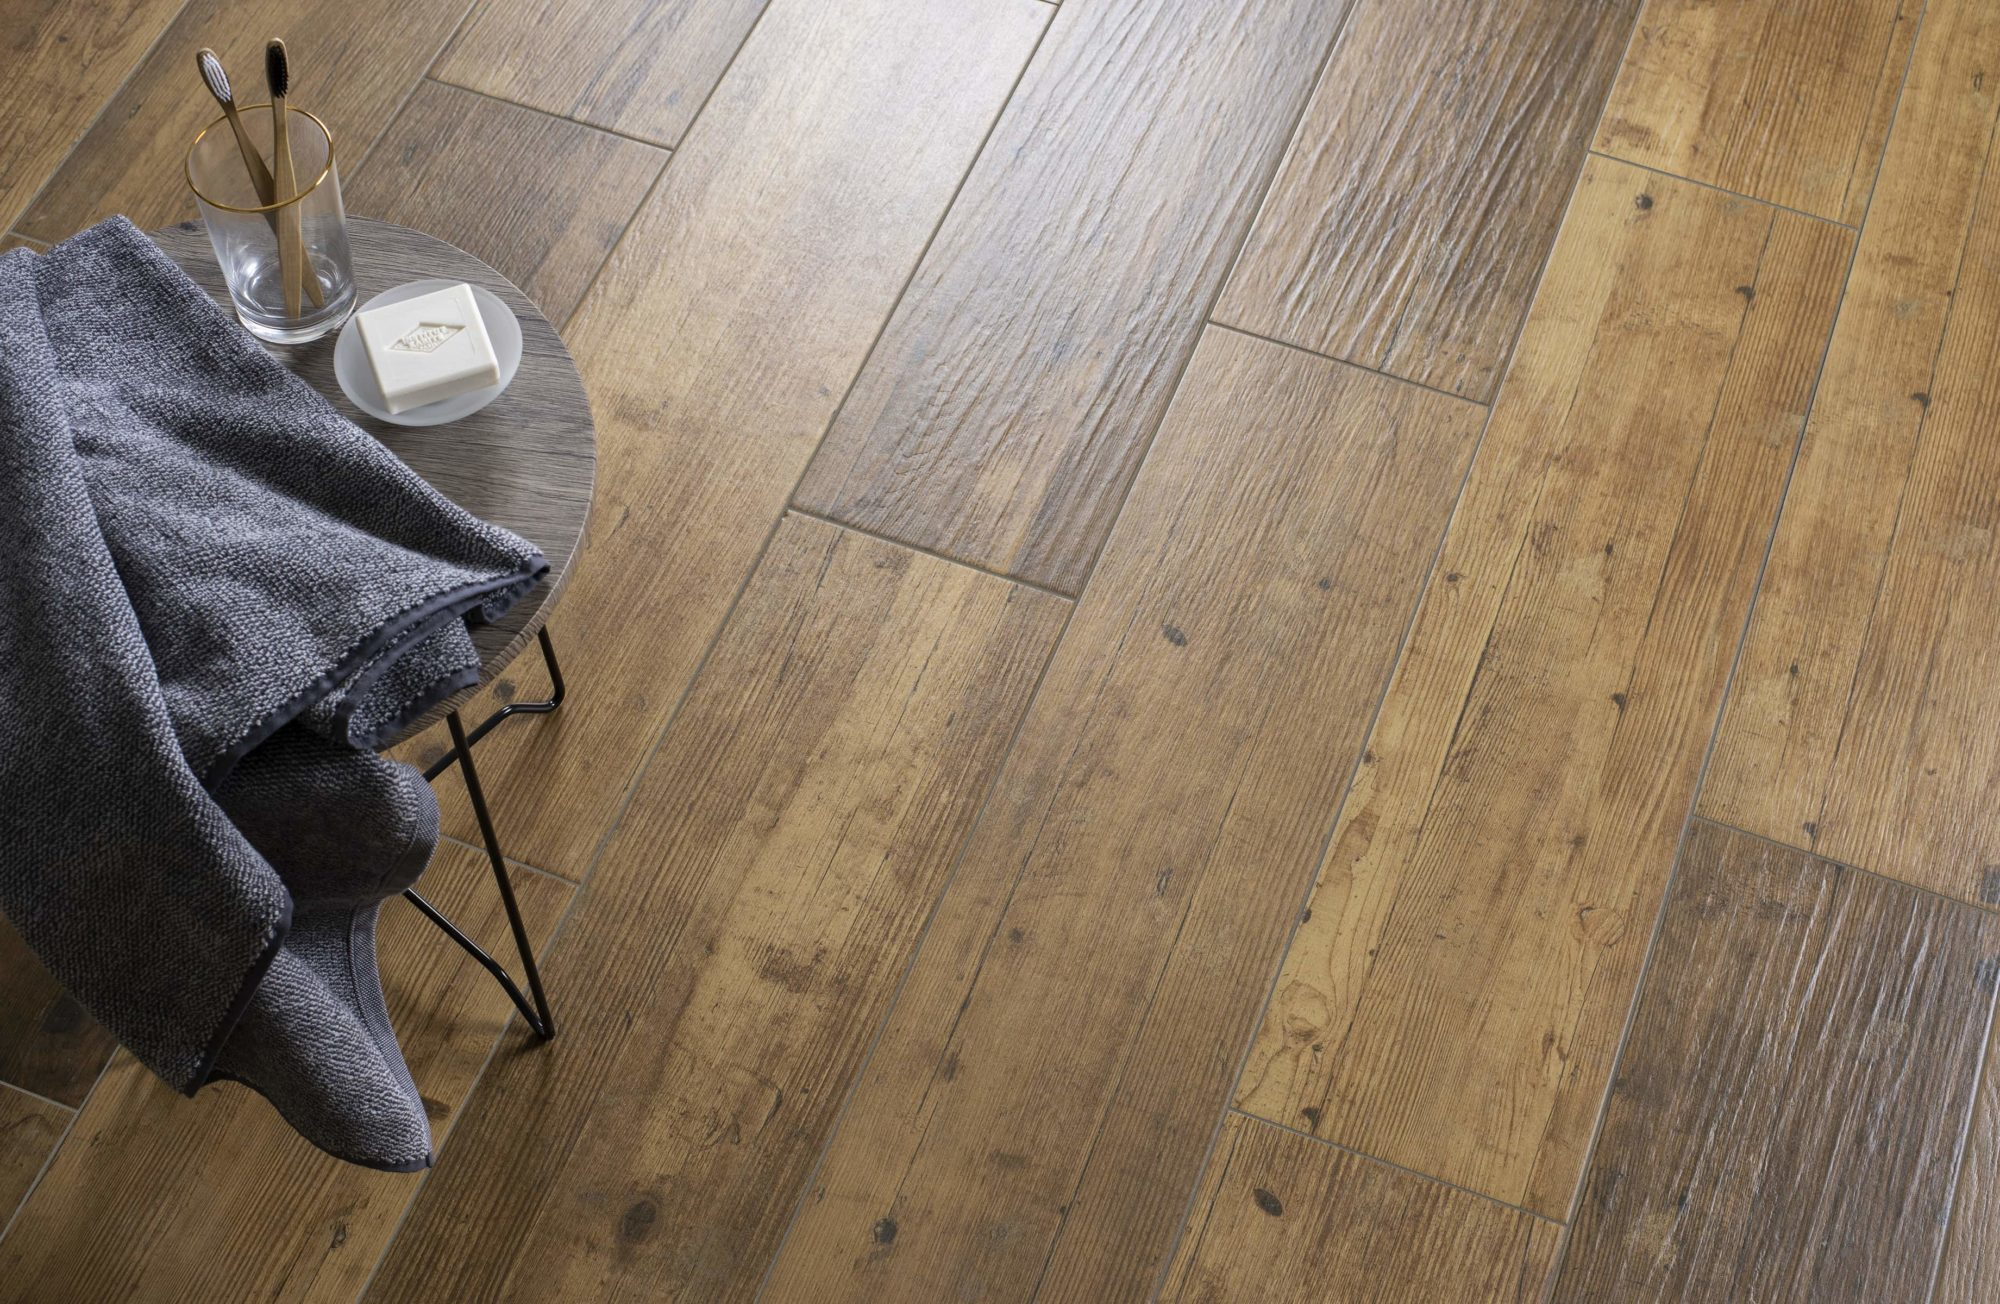 Laminate flooring with underfloor heating